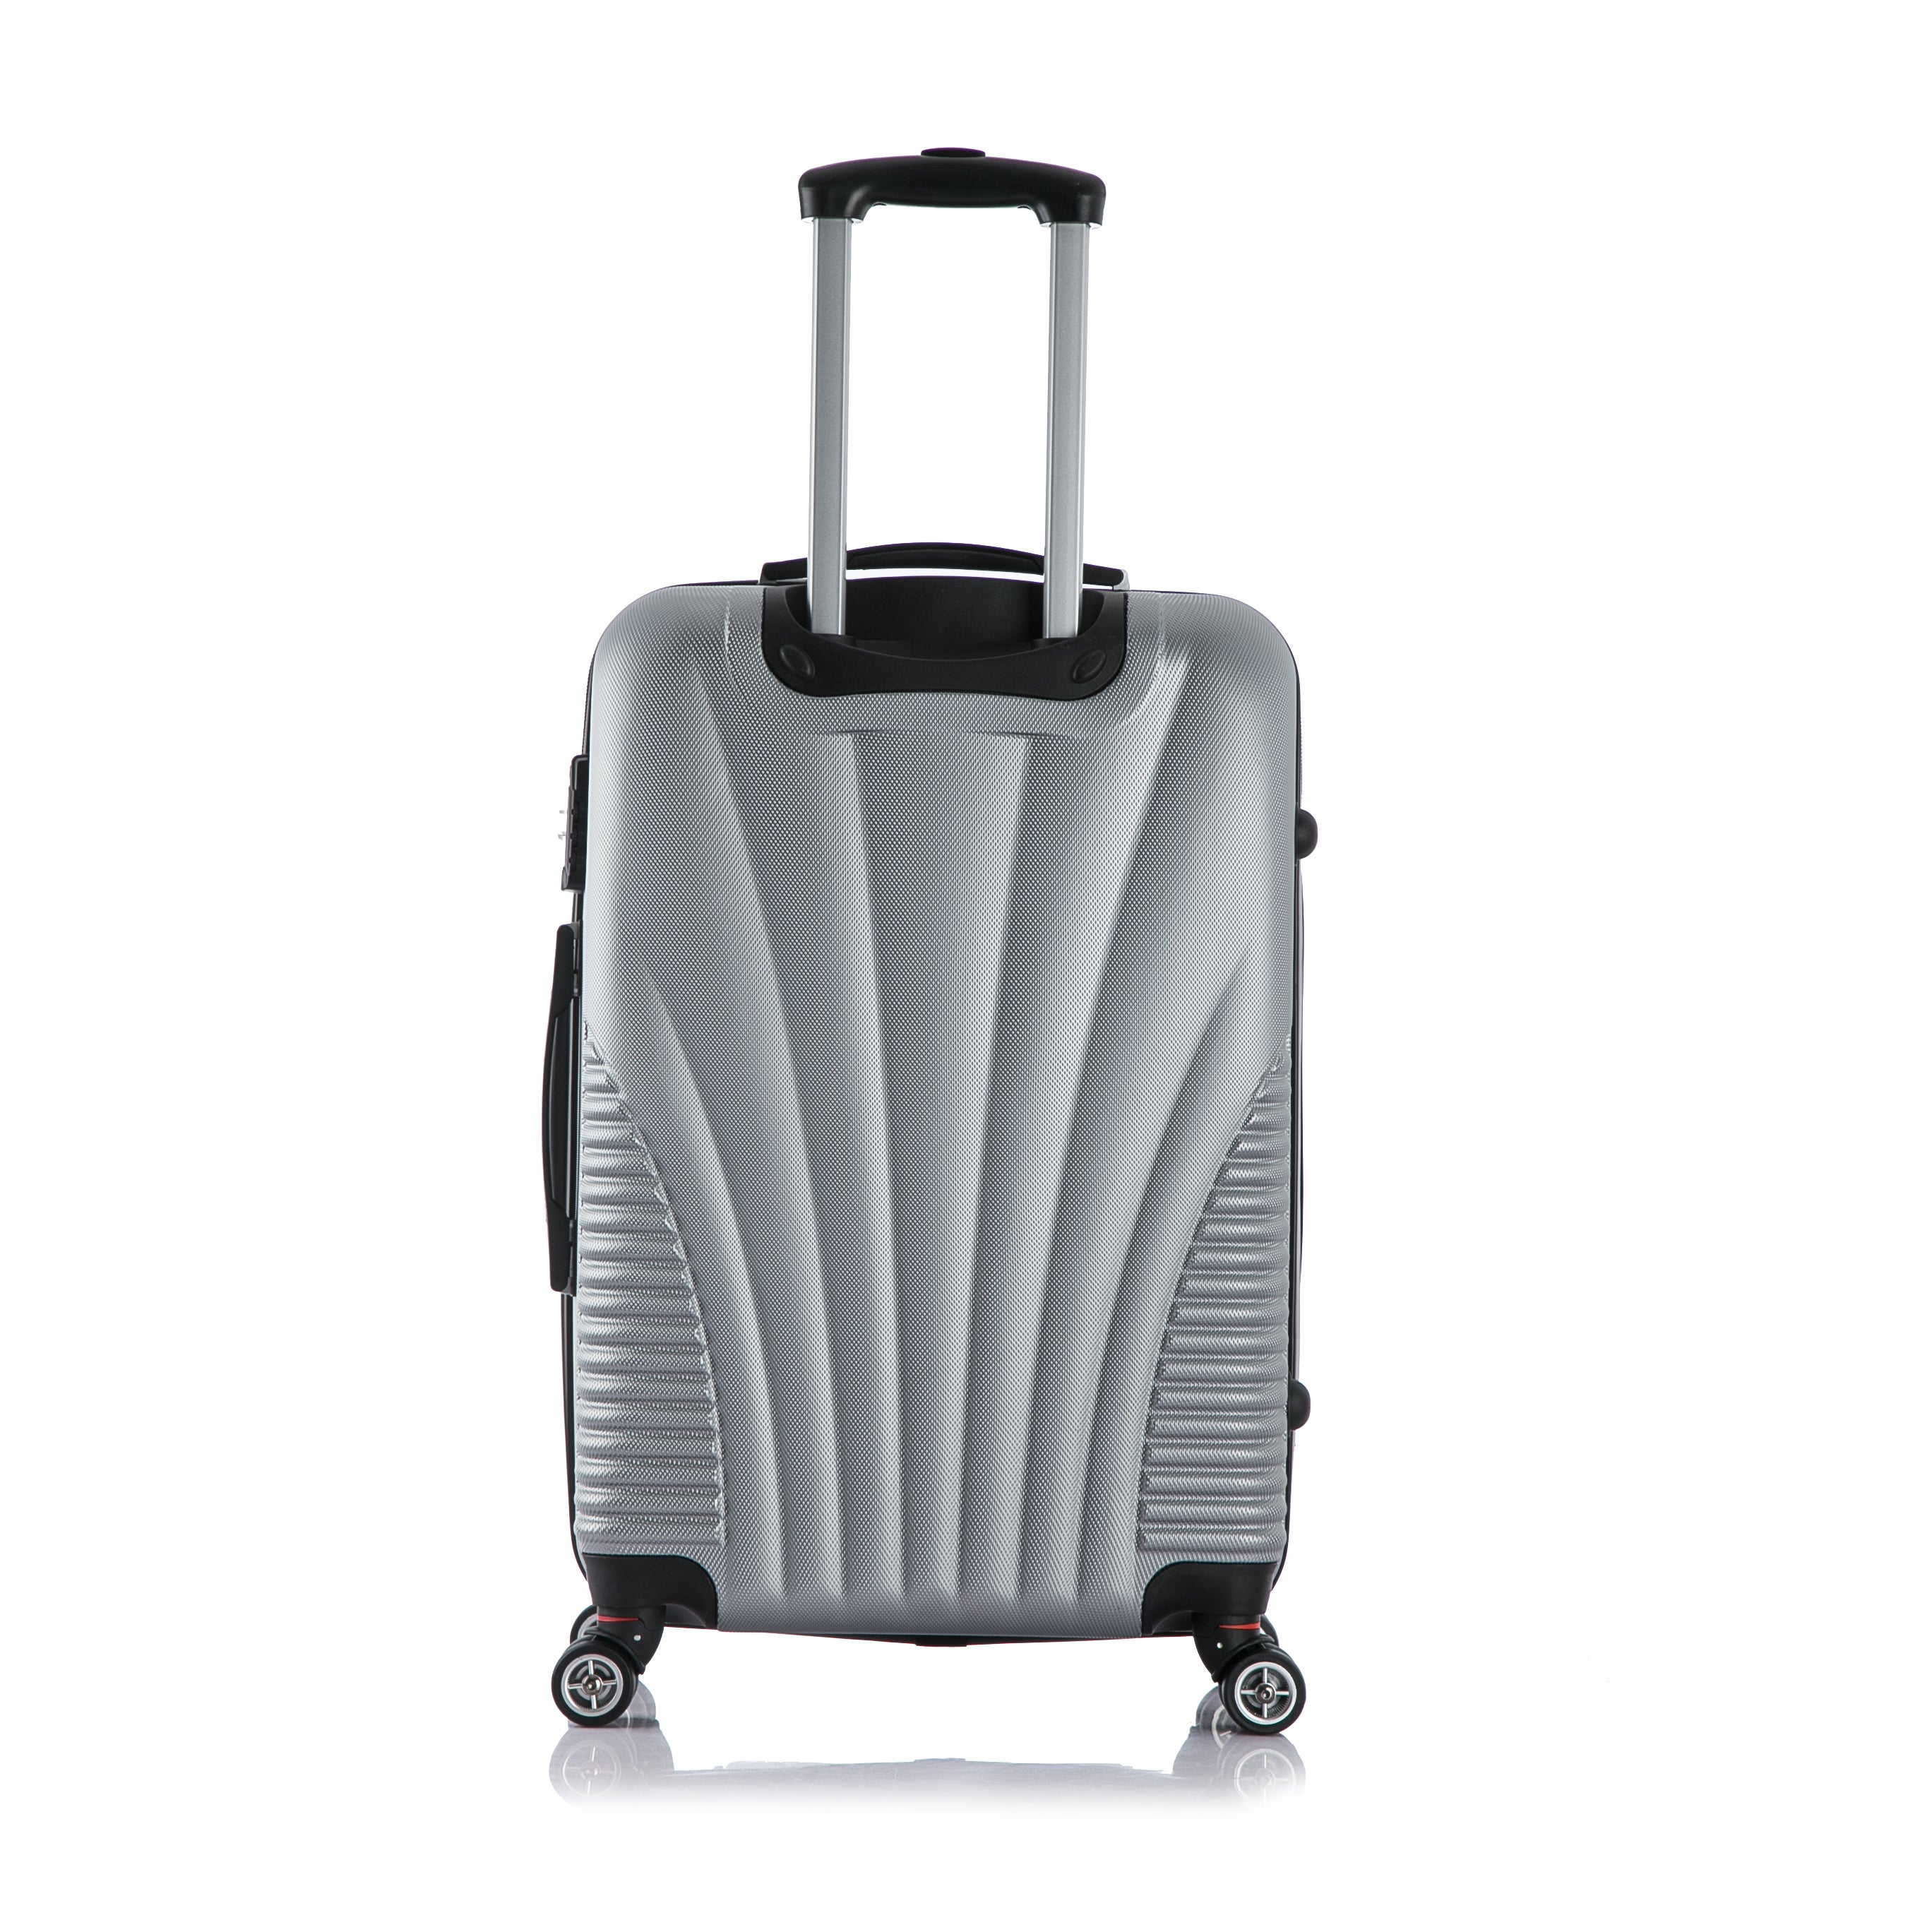 77f60d28c Shop InUSA Chicago Collection 29-inch Lightweight Hardside Spinner Suitcase  - Free Shipping Today - Overstock - 11468779